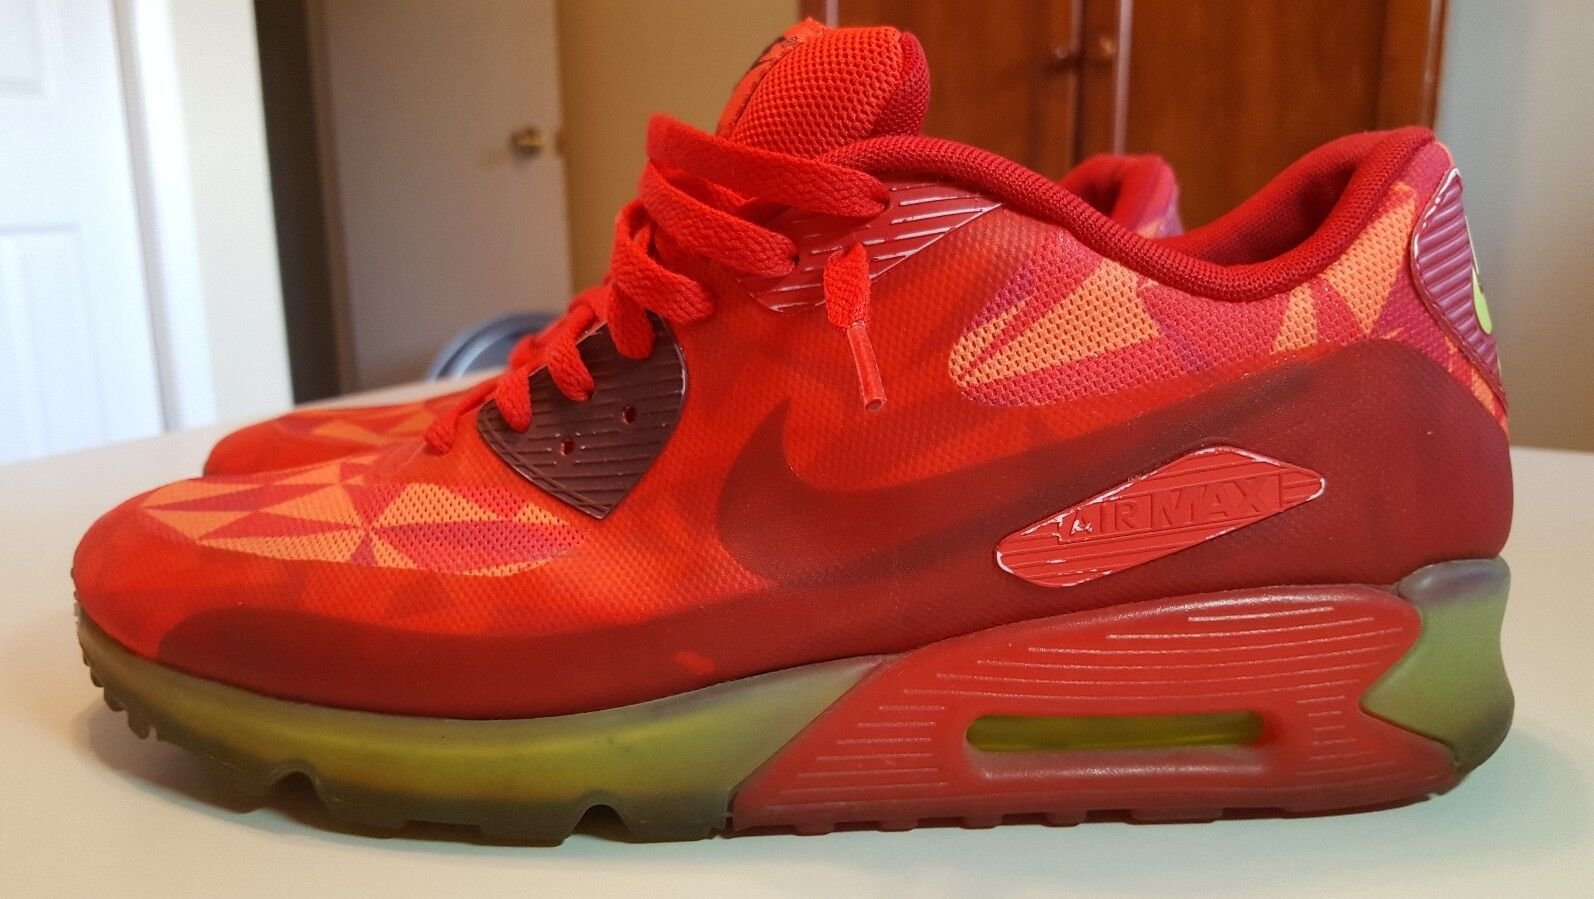 Nike Air Max '90, Ice Pack, 631748 Gym Red, 631748 Pack, 600, Men's Running Shoes, Size 12 d26f00